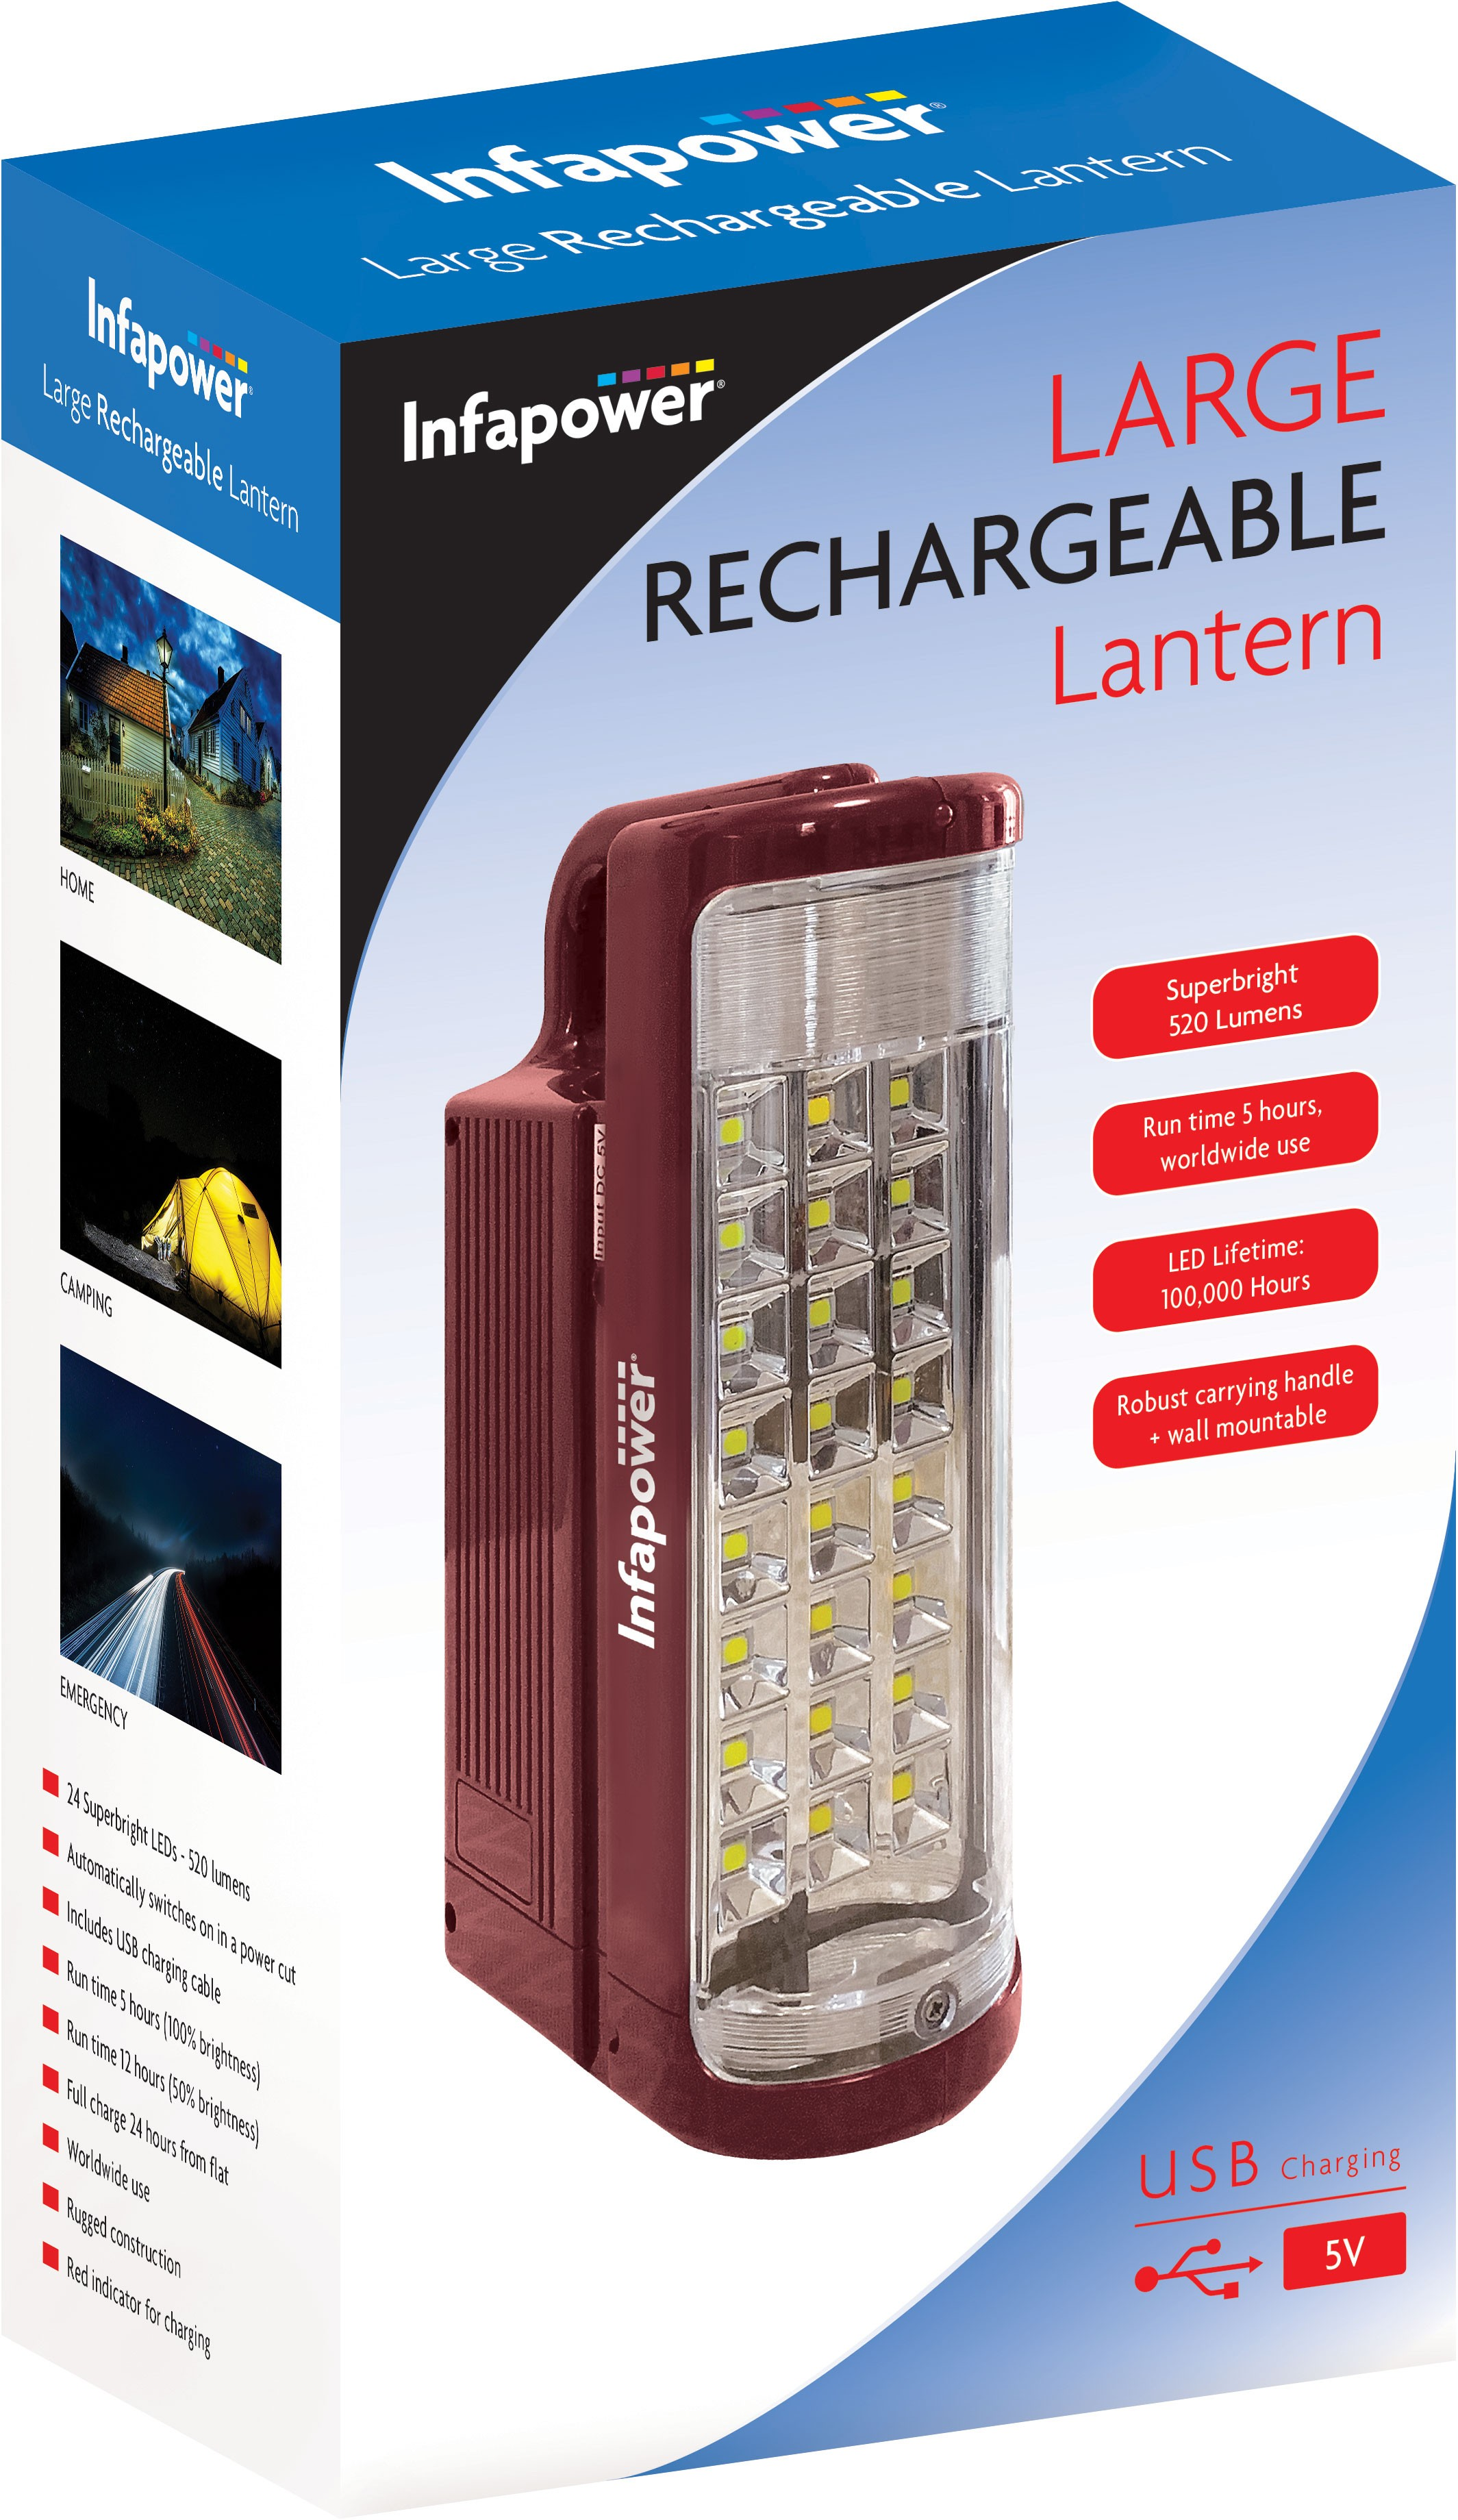 Infapower Large Rechargeable Lantern - F059